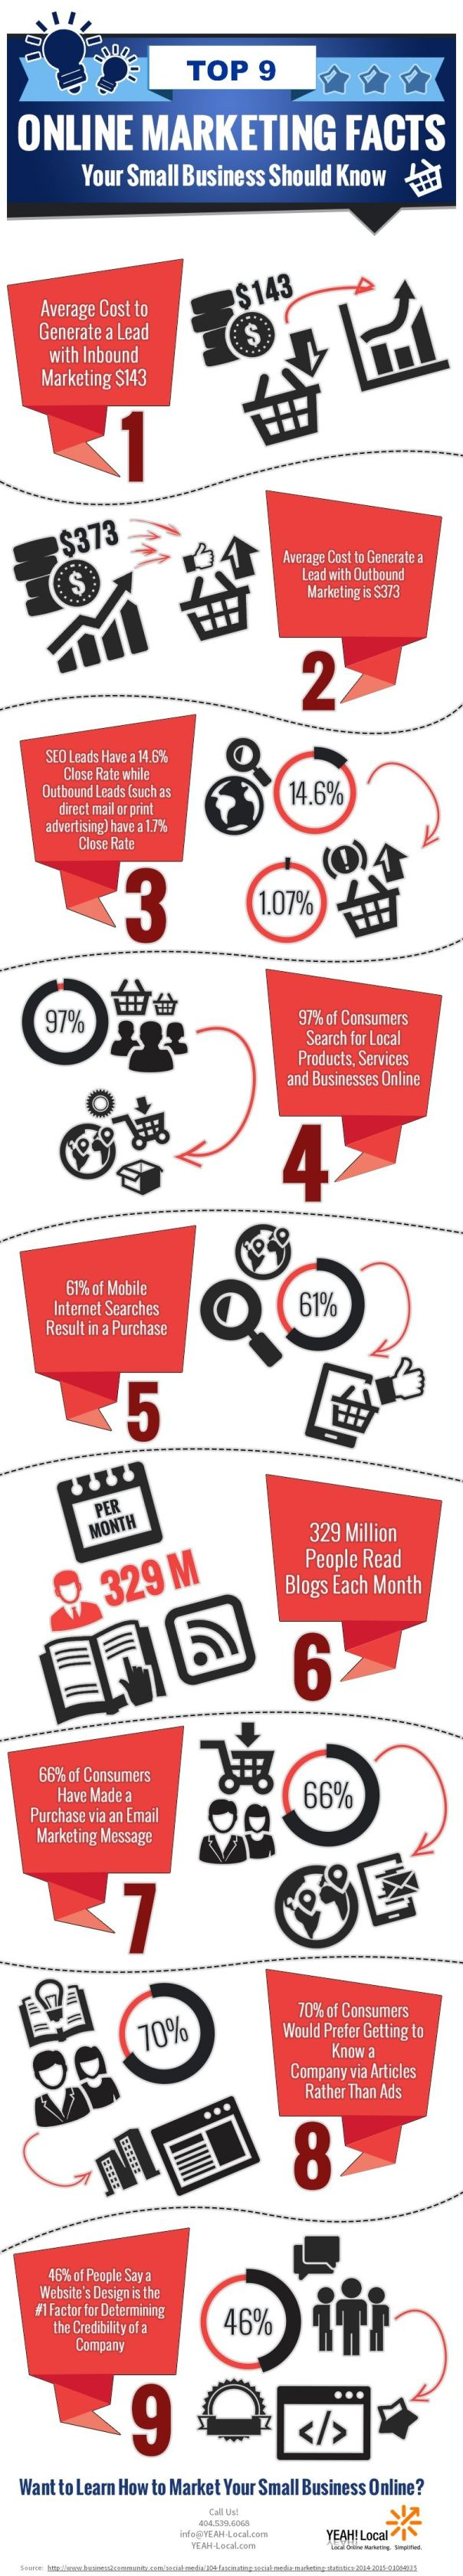 9 Online Marketing Stats for Small Business